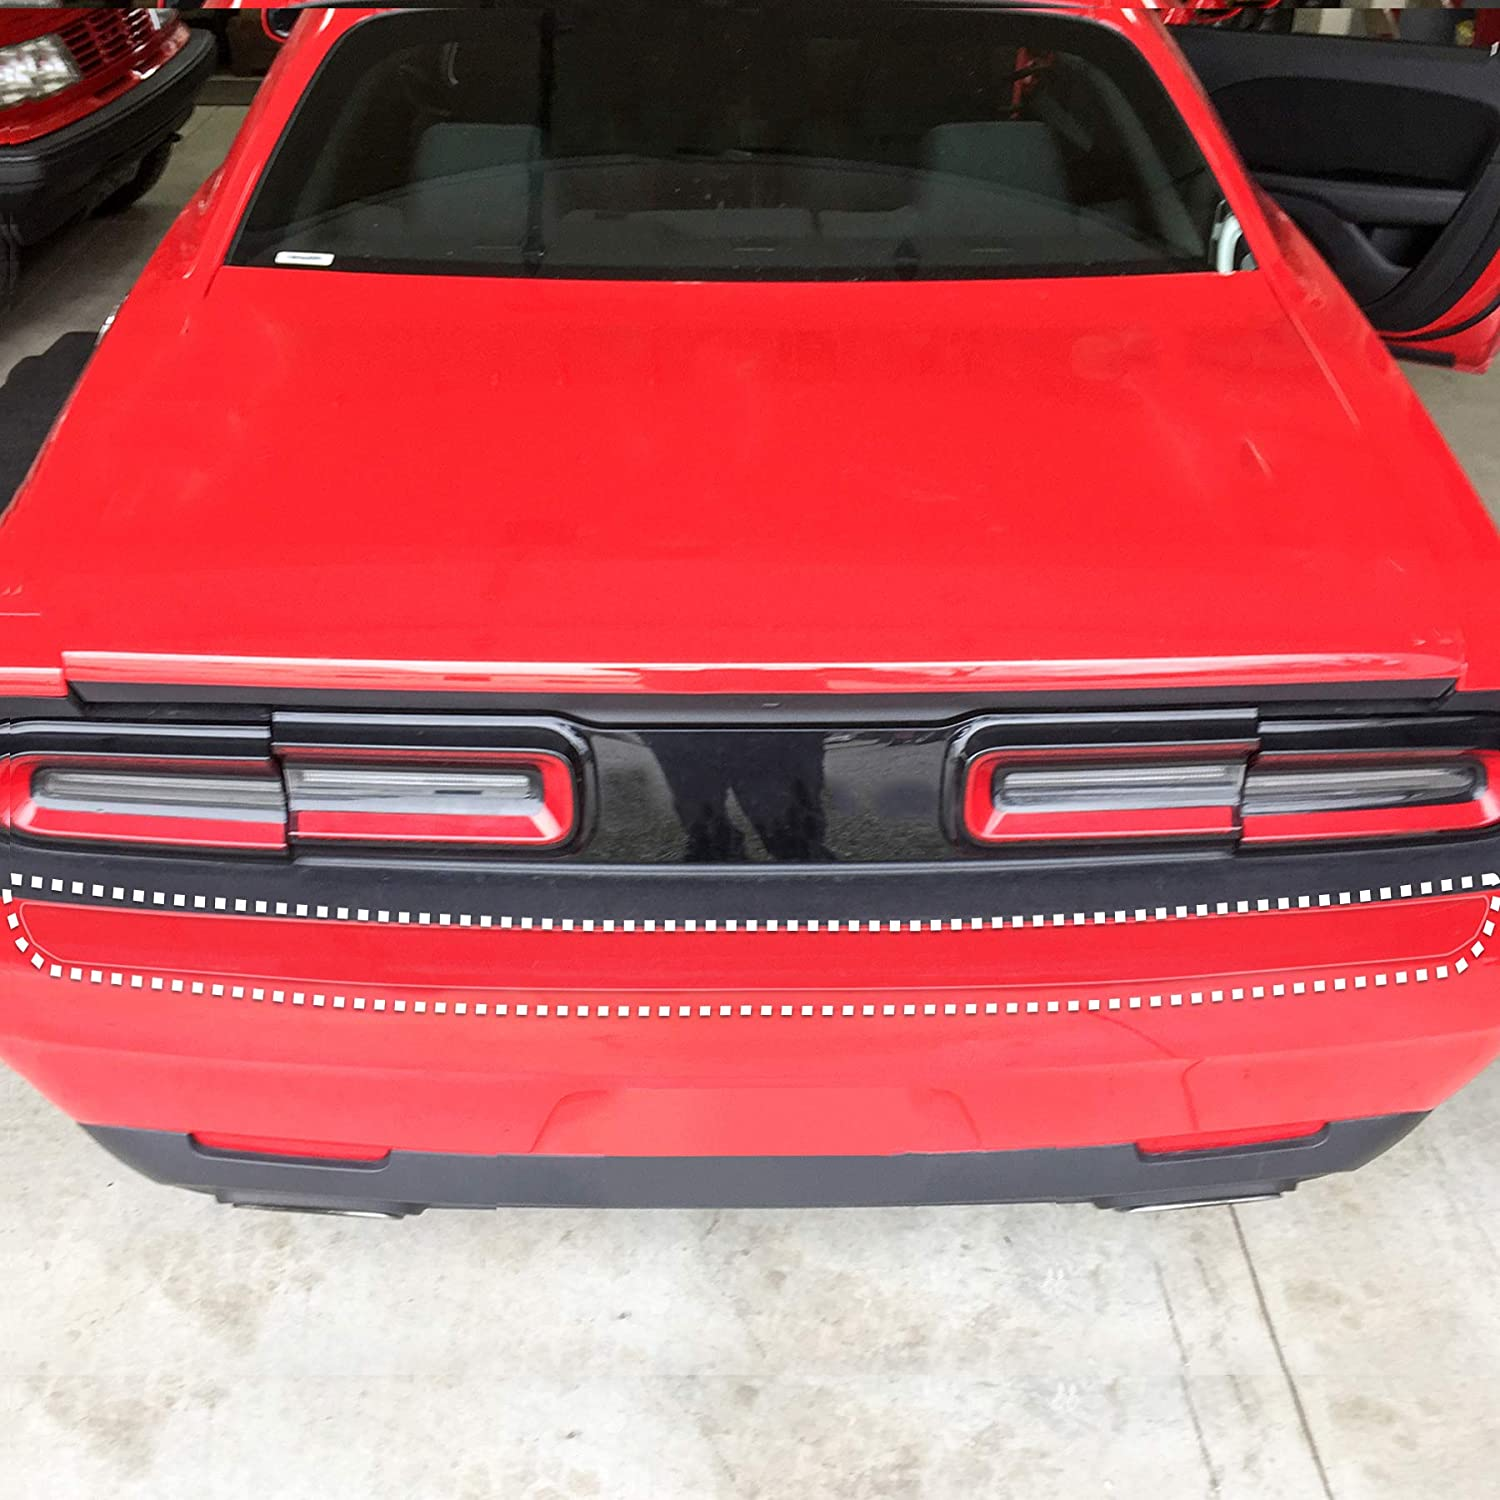 Red Hound Auto Rear Bumper Paint Protection Film 2015-2018 Compatible with Dodge Challenger 1pc Custom Guard Clear Applique Cover Premium Self Healing 4332946452